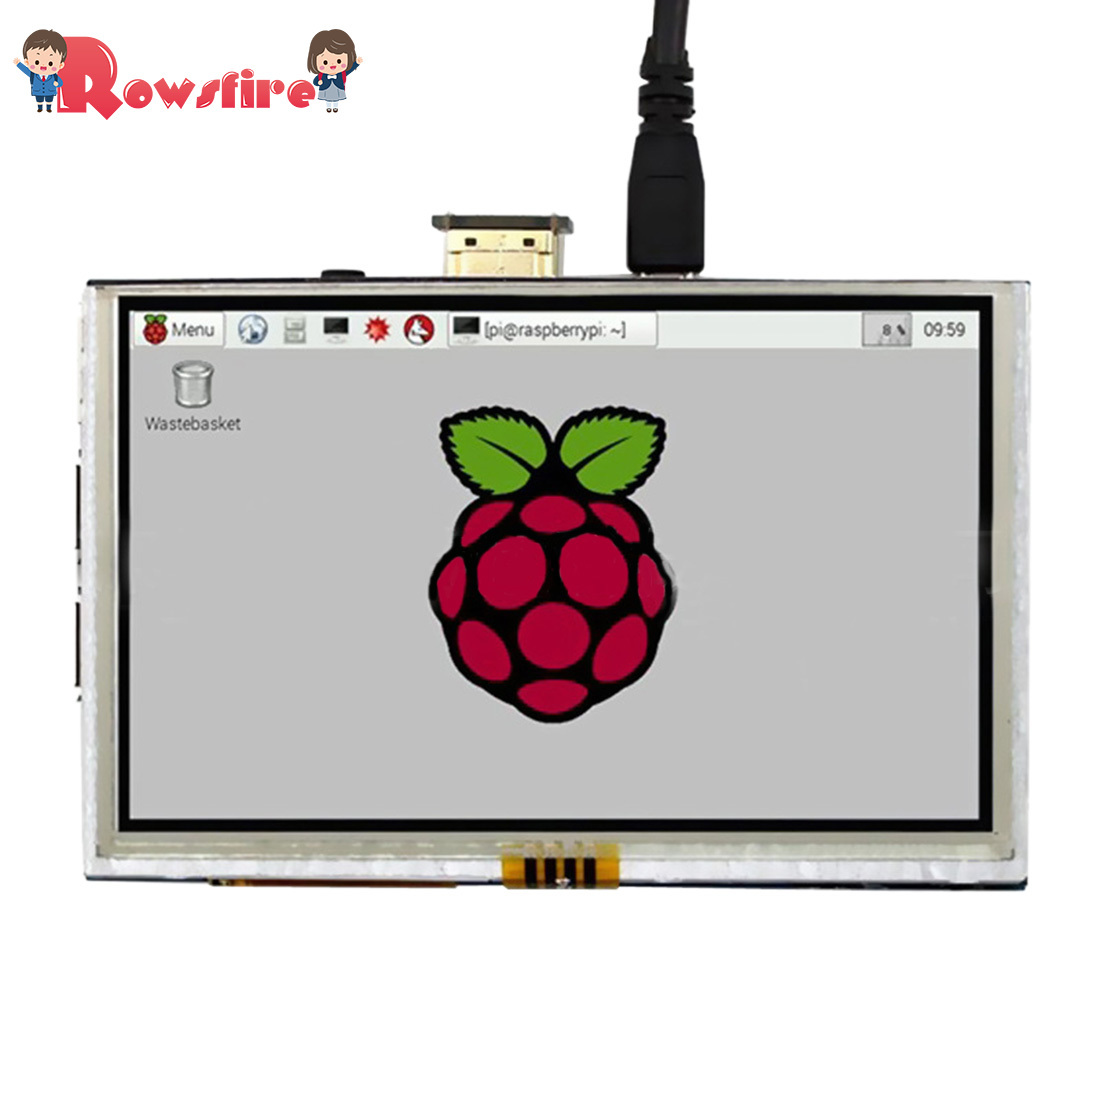 5-Inch Touch Display Screen LED Resistive Touchscreen With HDMI Adapter For Raspberry Pi 3B+/3B/2B